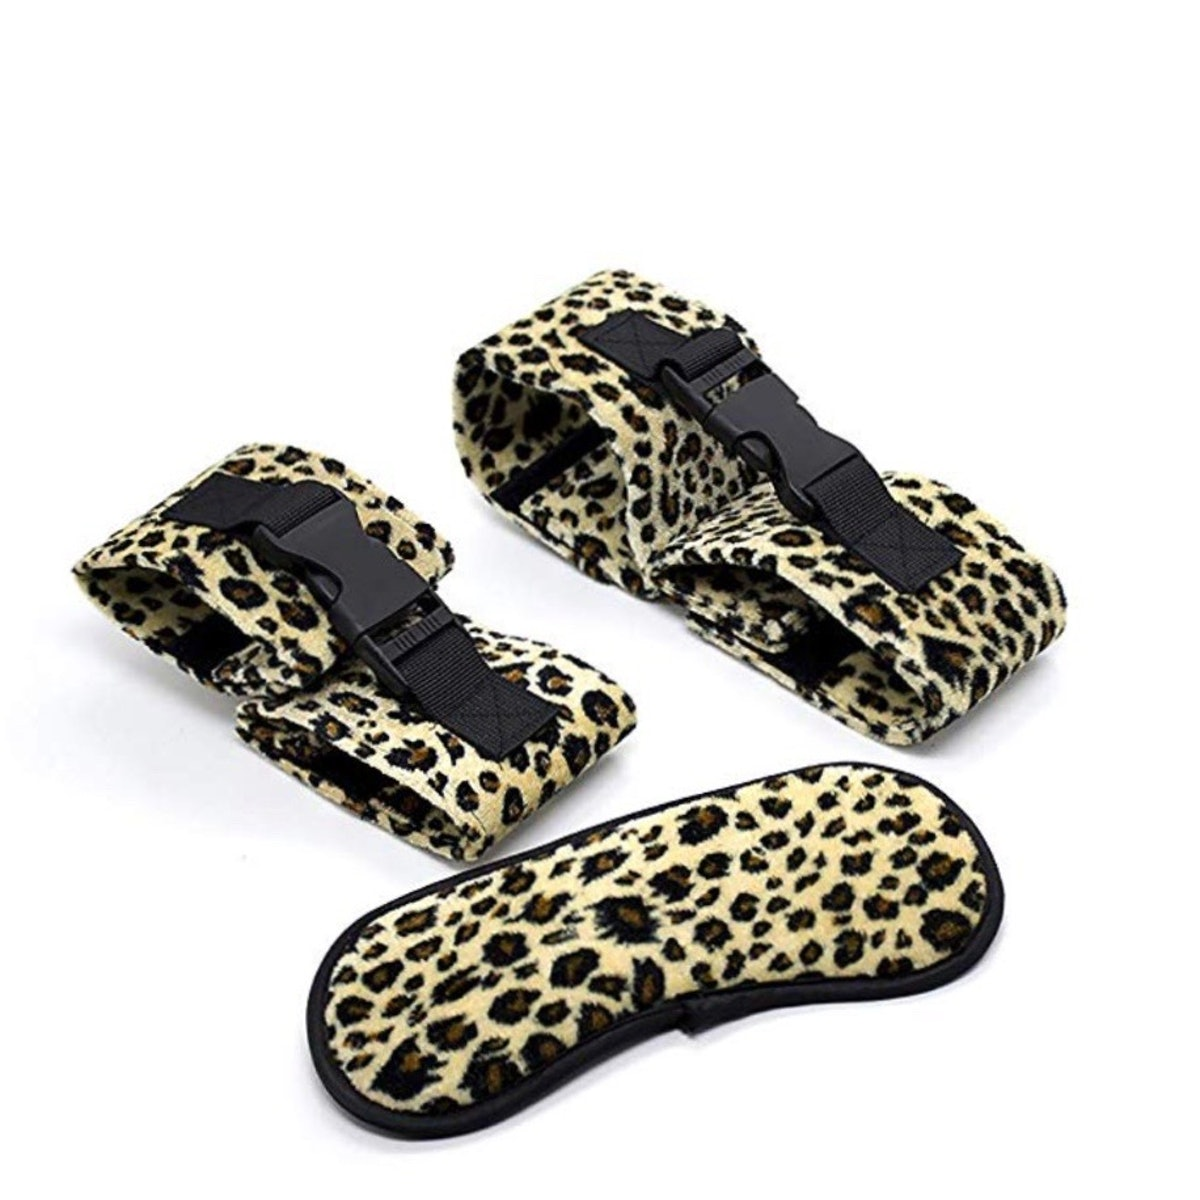 KIMMAO Leopard Eye Patch Handcuff and Ankle